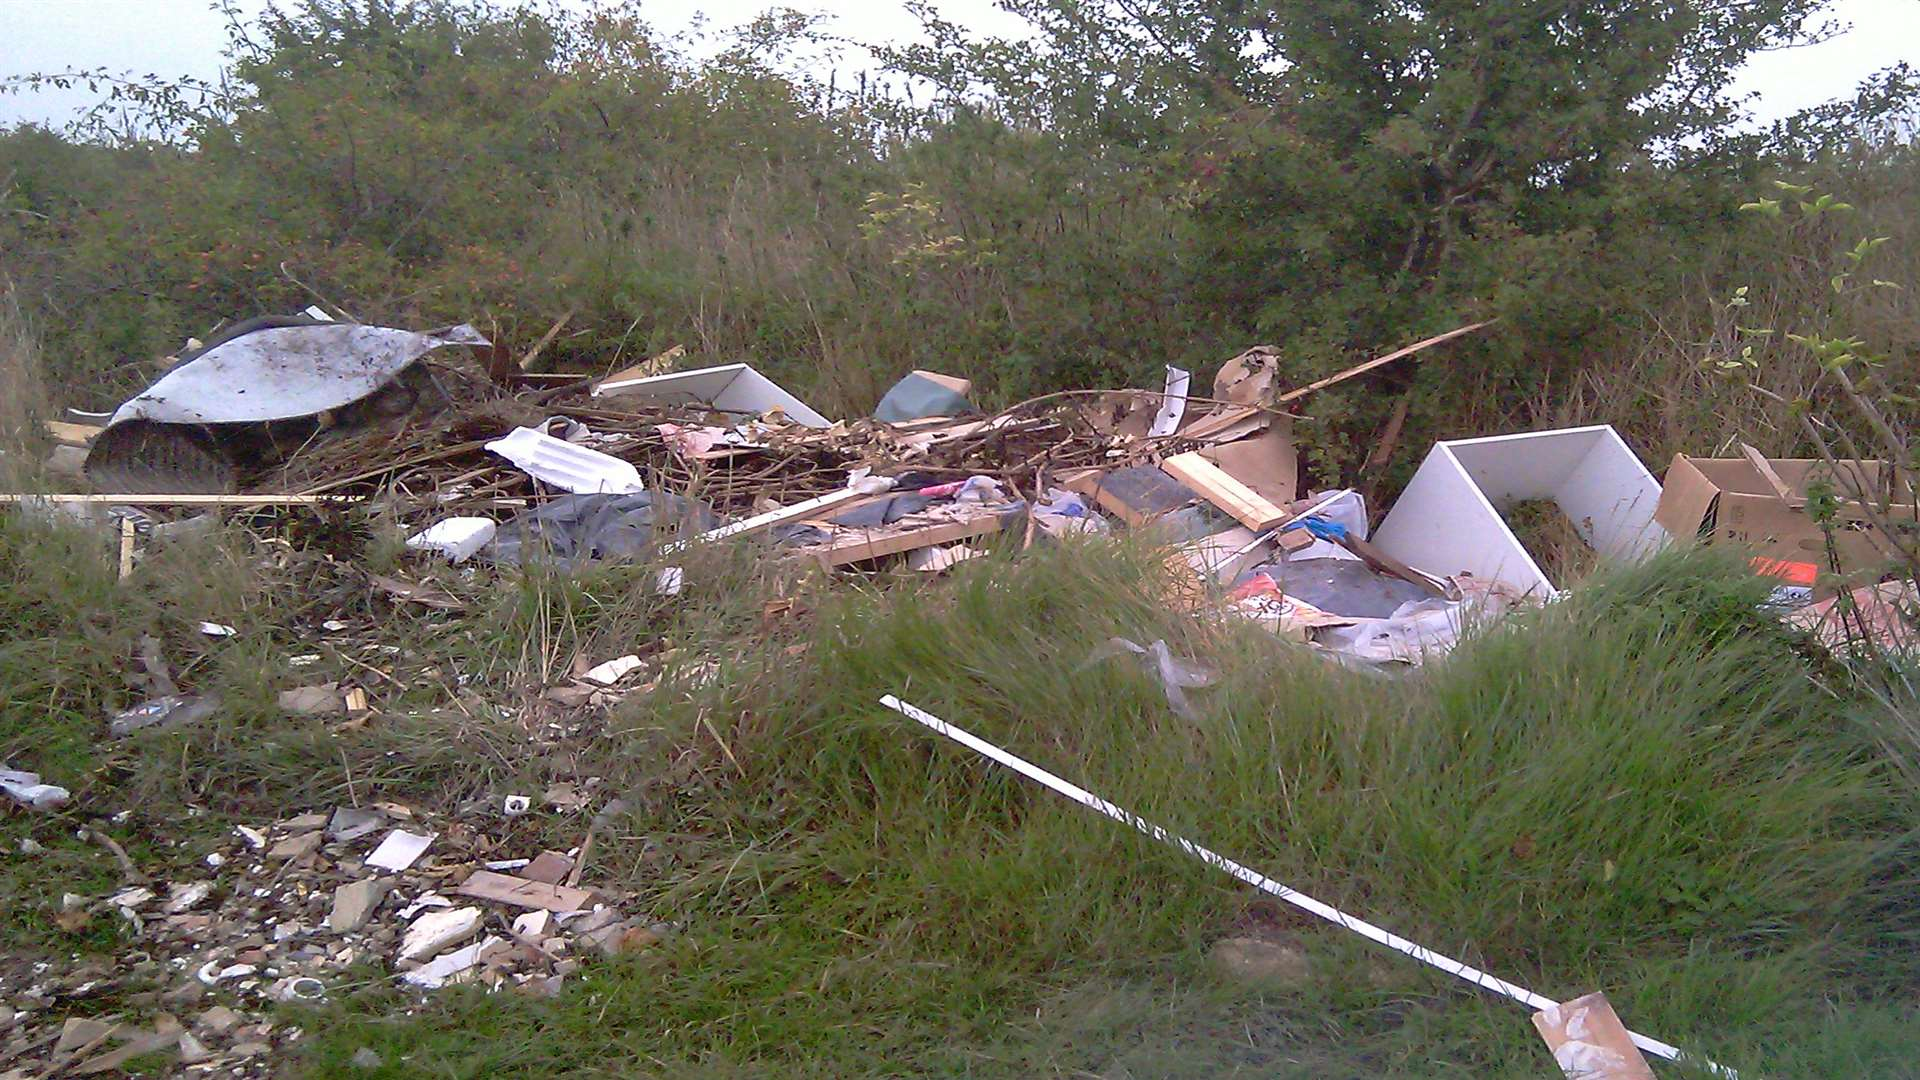 Fly-tipping has been spotted around the county with councils shelling out thousands to clear it away